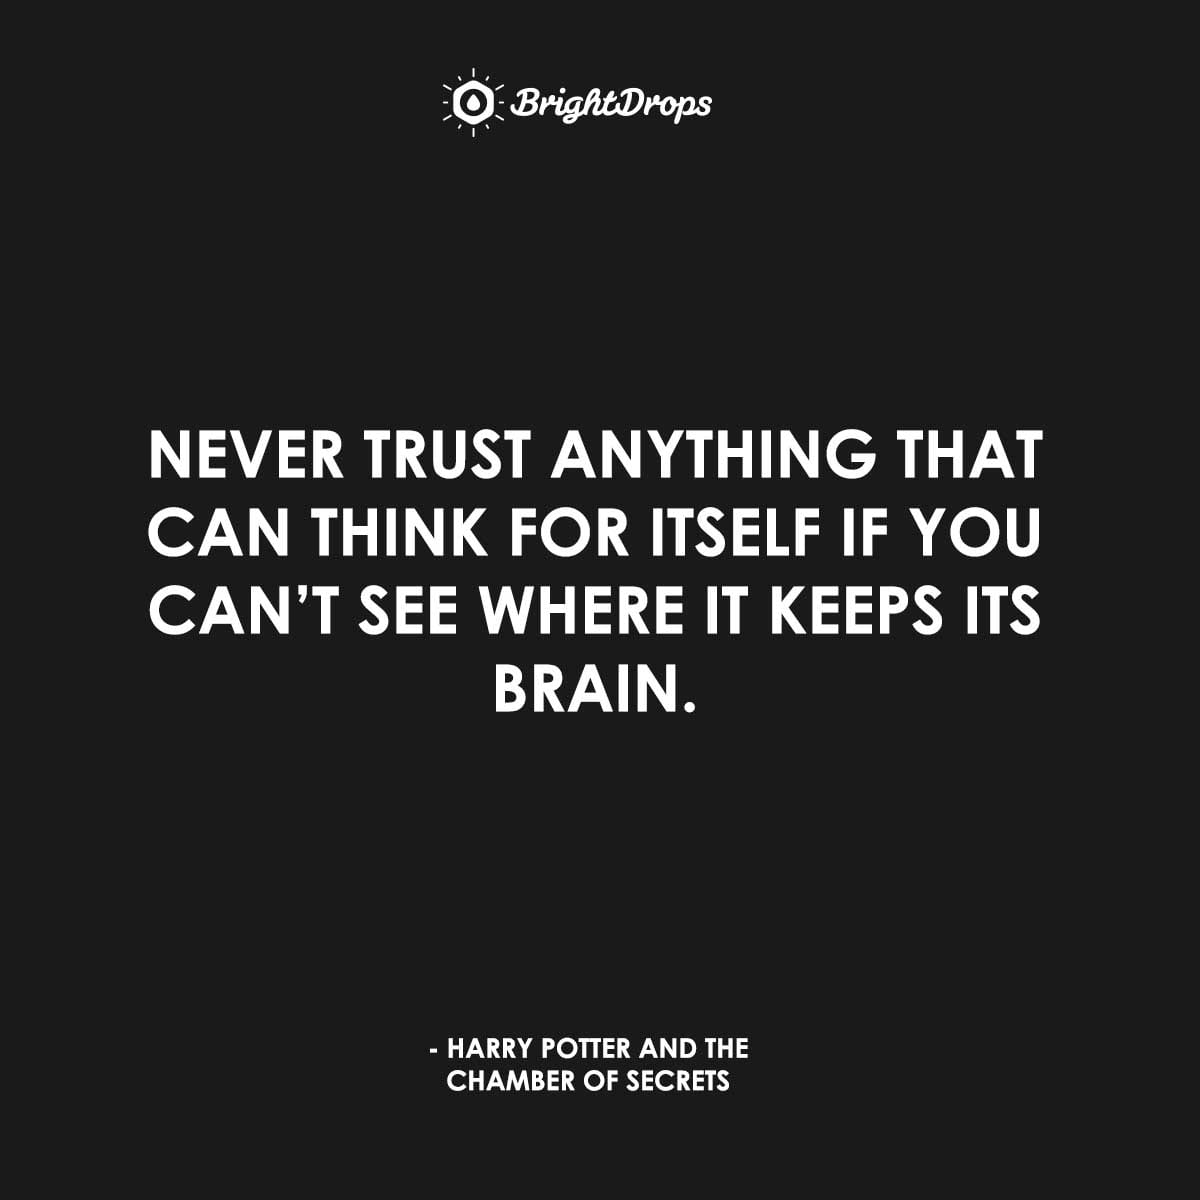 Never trust anything that can think for itself if you can't see where it keeps its brain. - Harry Potter and the Chamber of Secrets